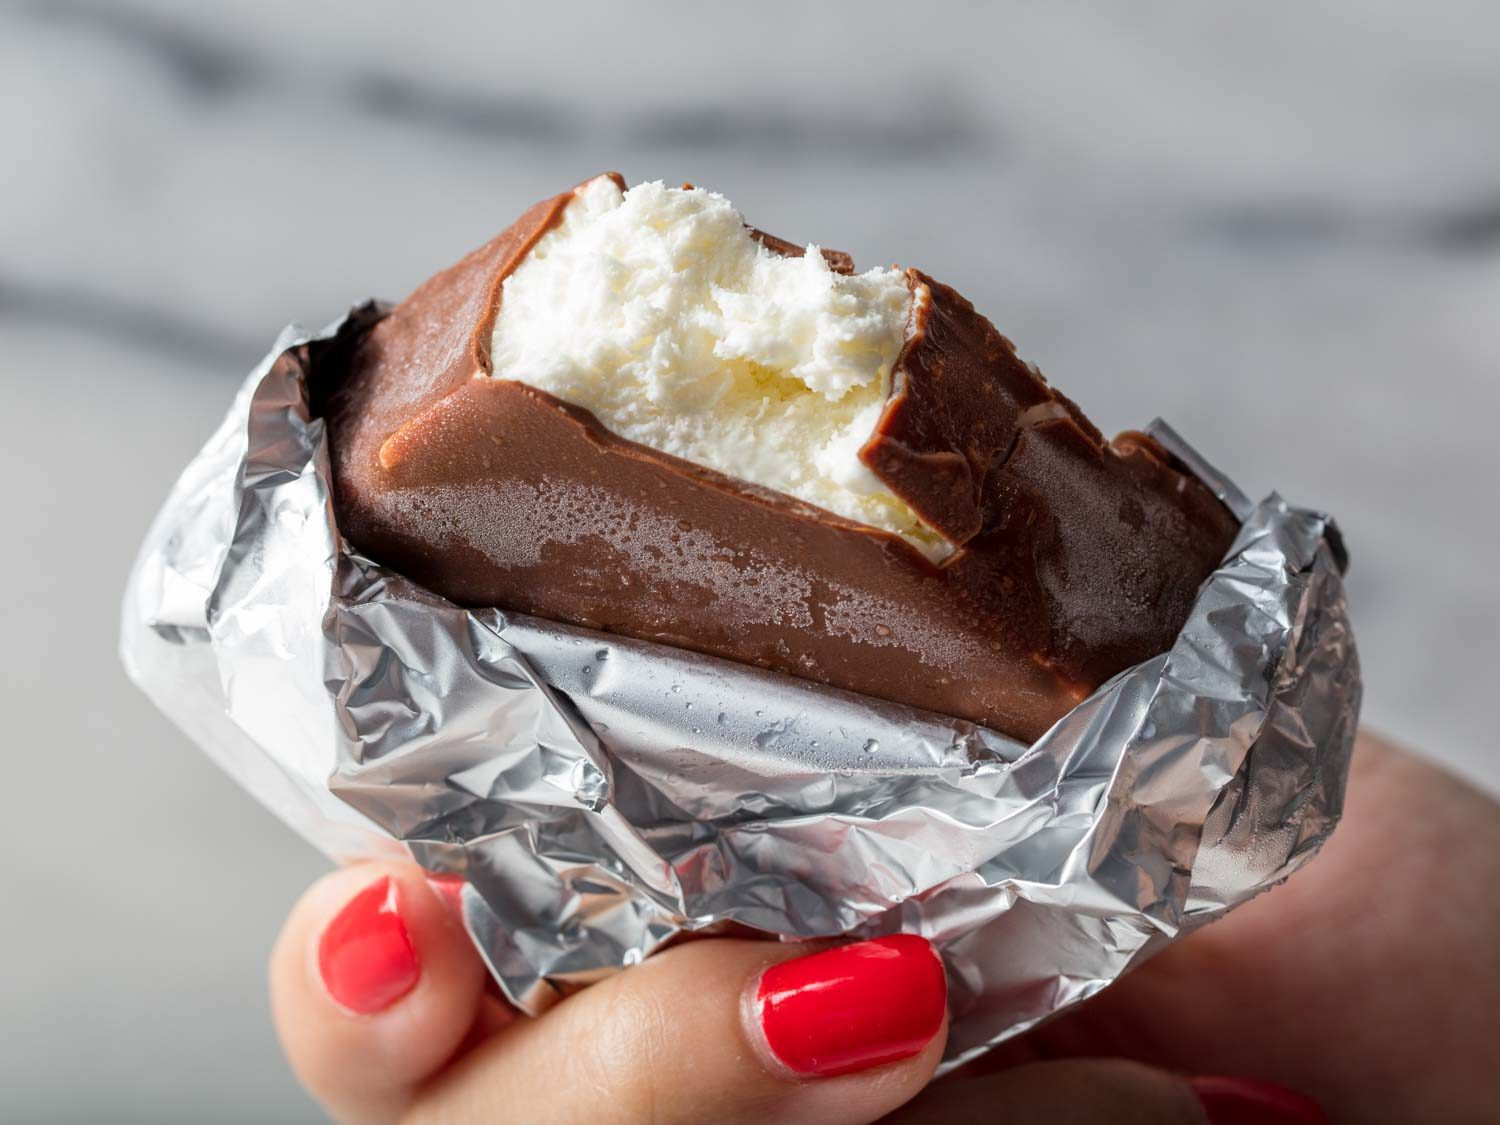 A hand holding a foil-wrapped homemade Klondike ice cream bar with a bite taken out